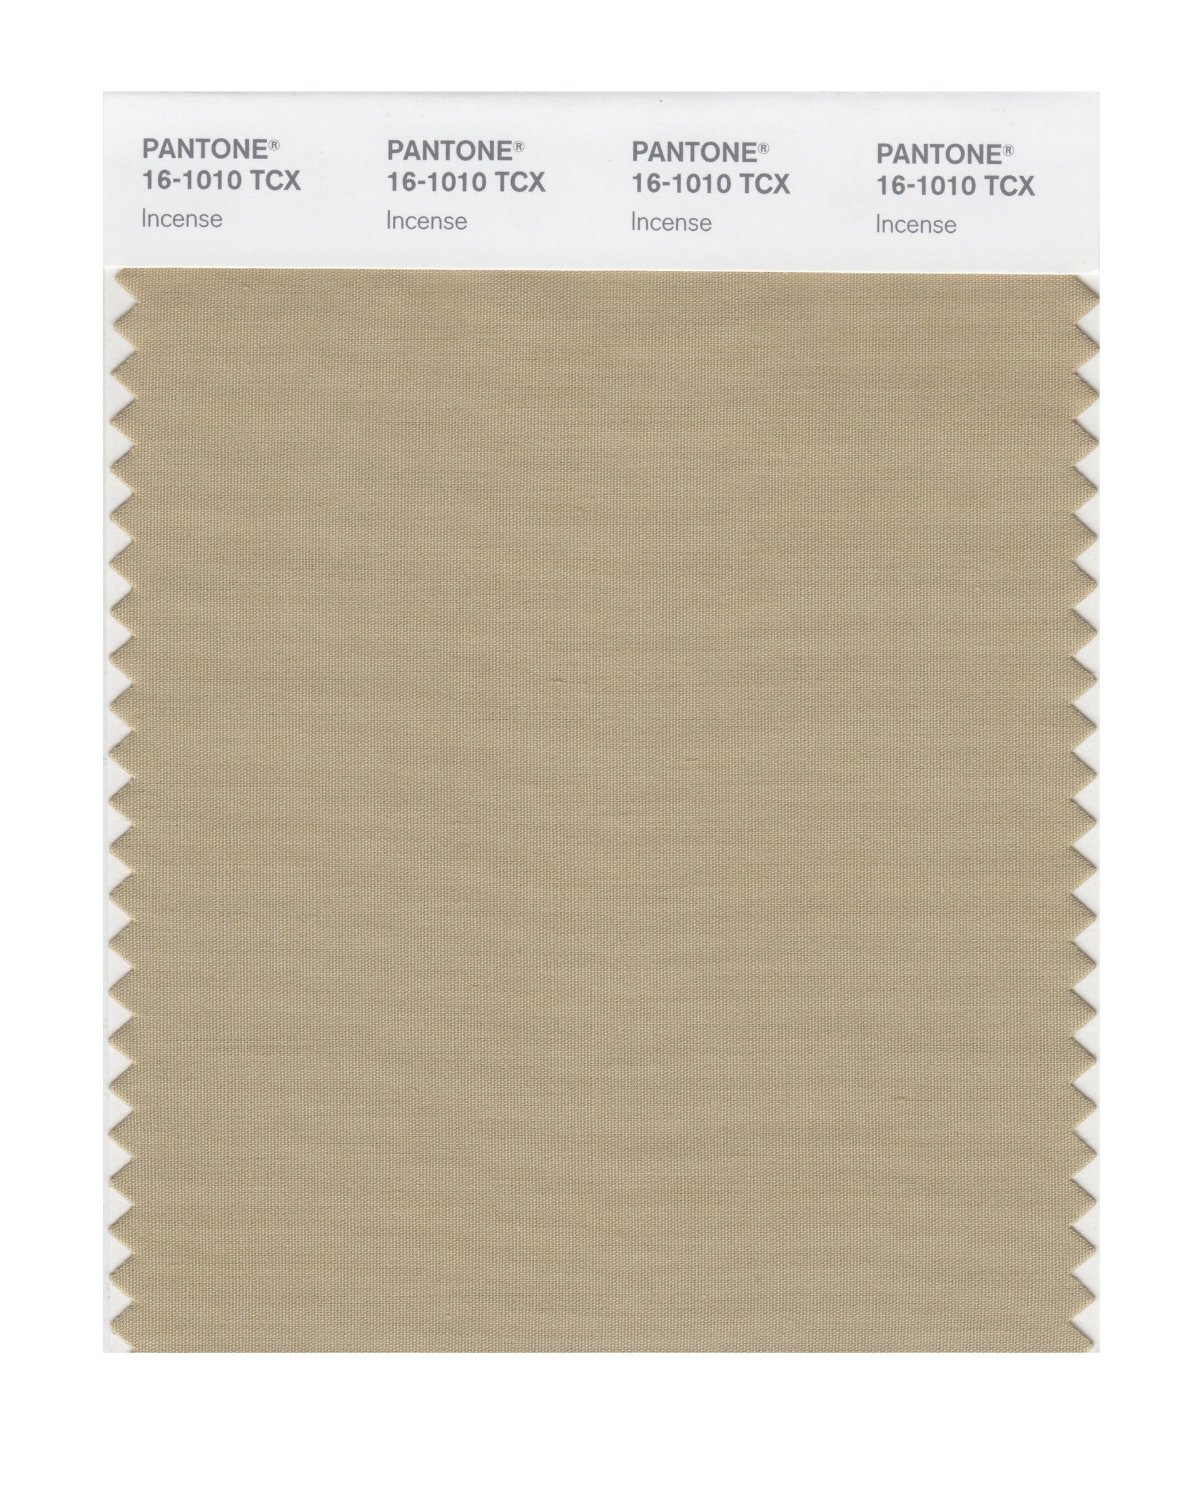 Pantone Smart Swatch 16-1010 Incense